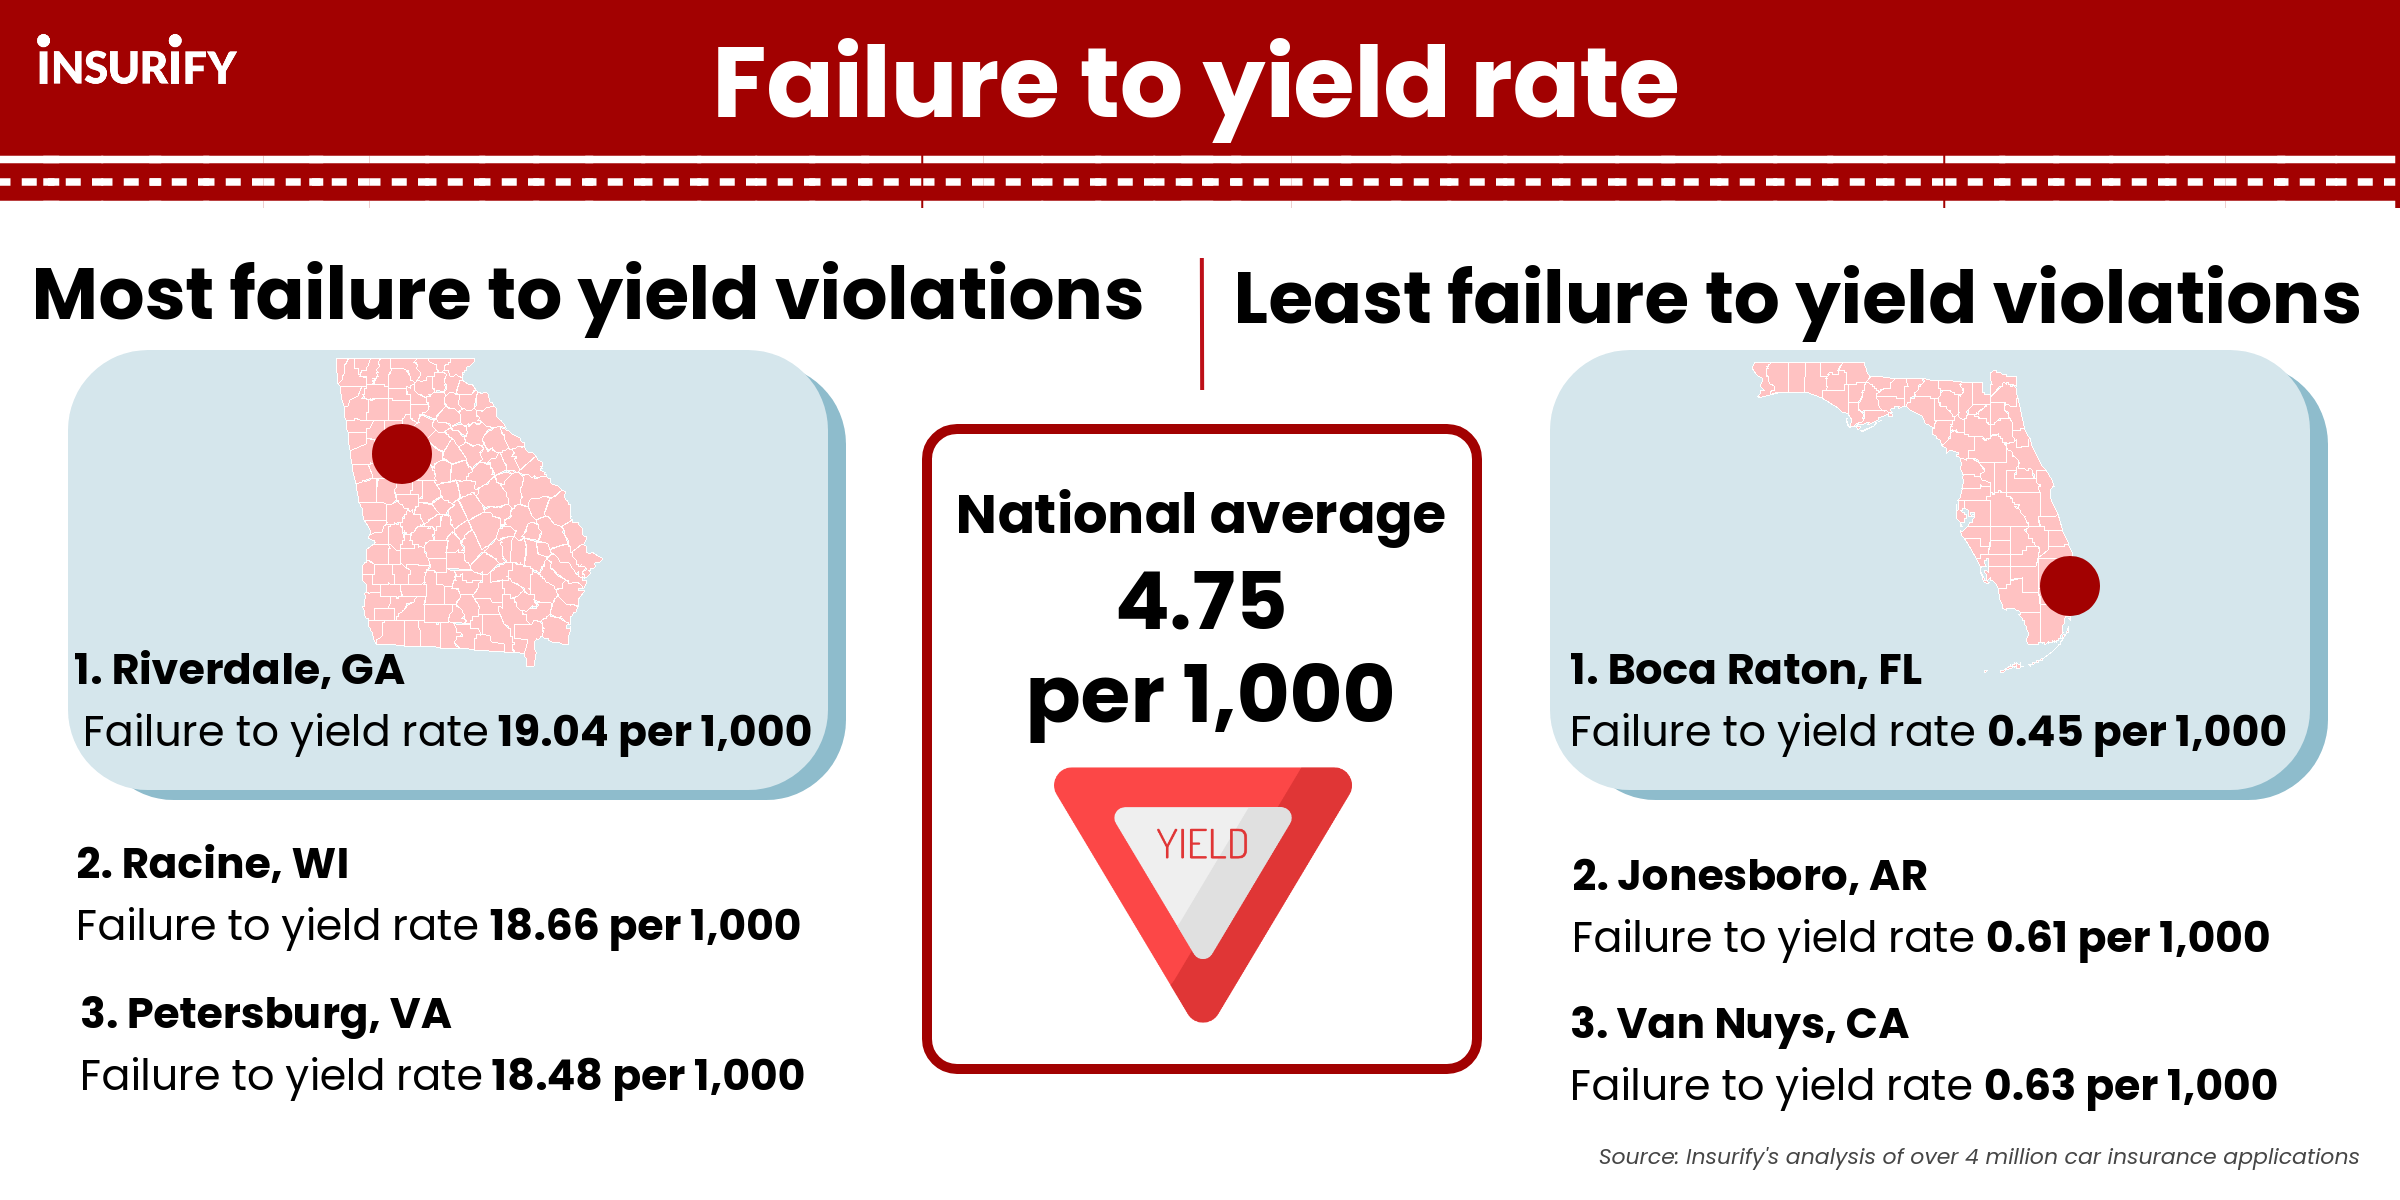 Graphic showing the U.S. cities with the highest rates of failure to yield violations in 2021.